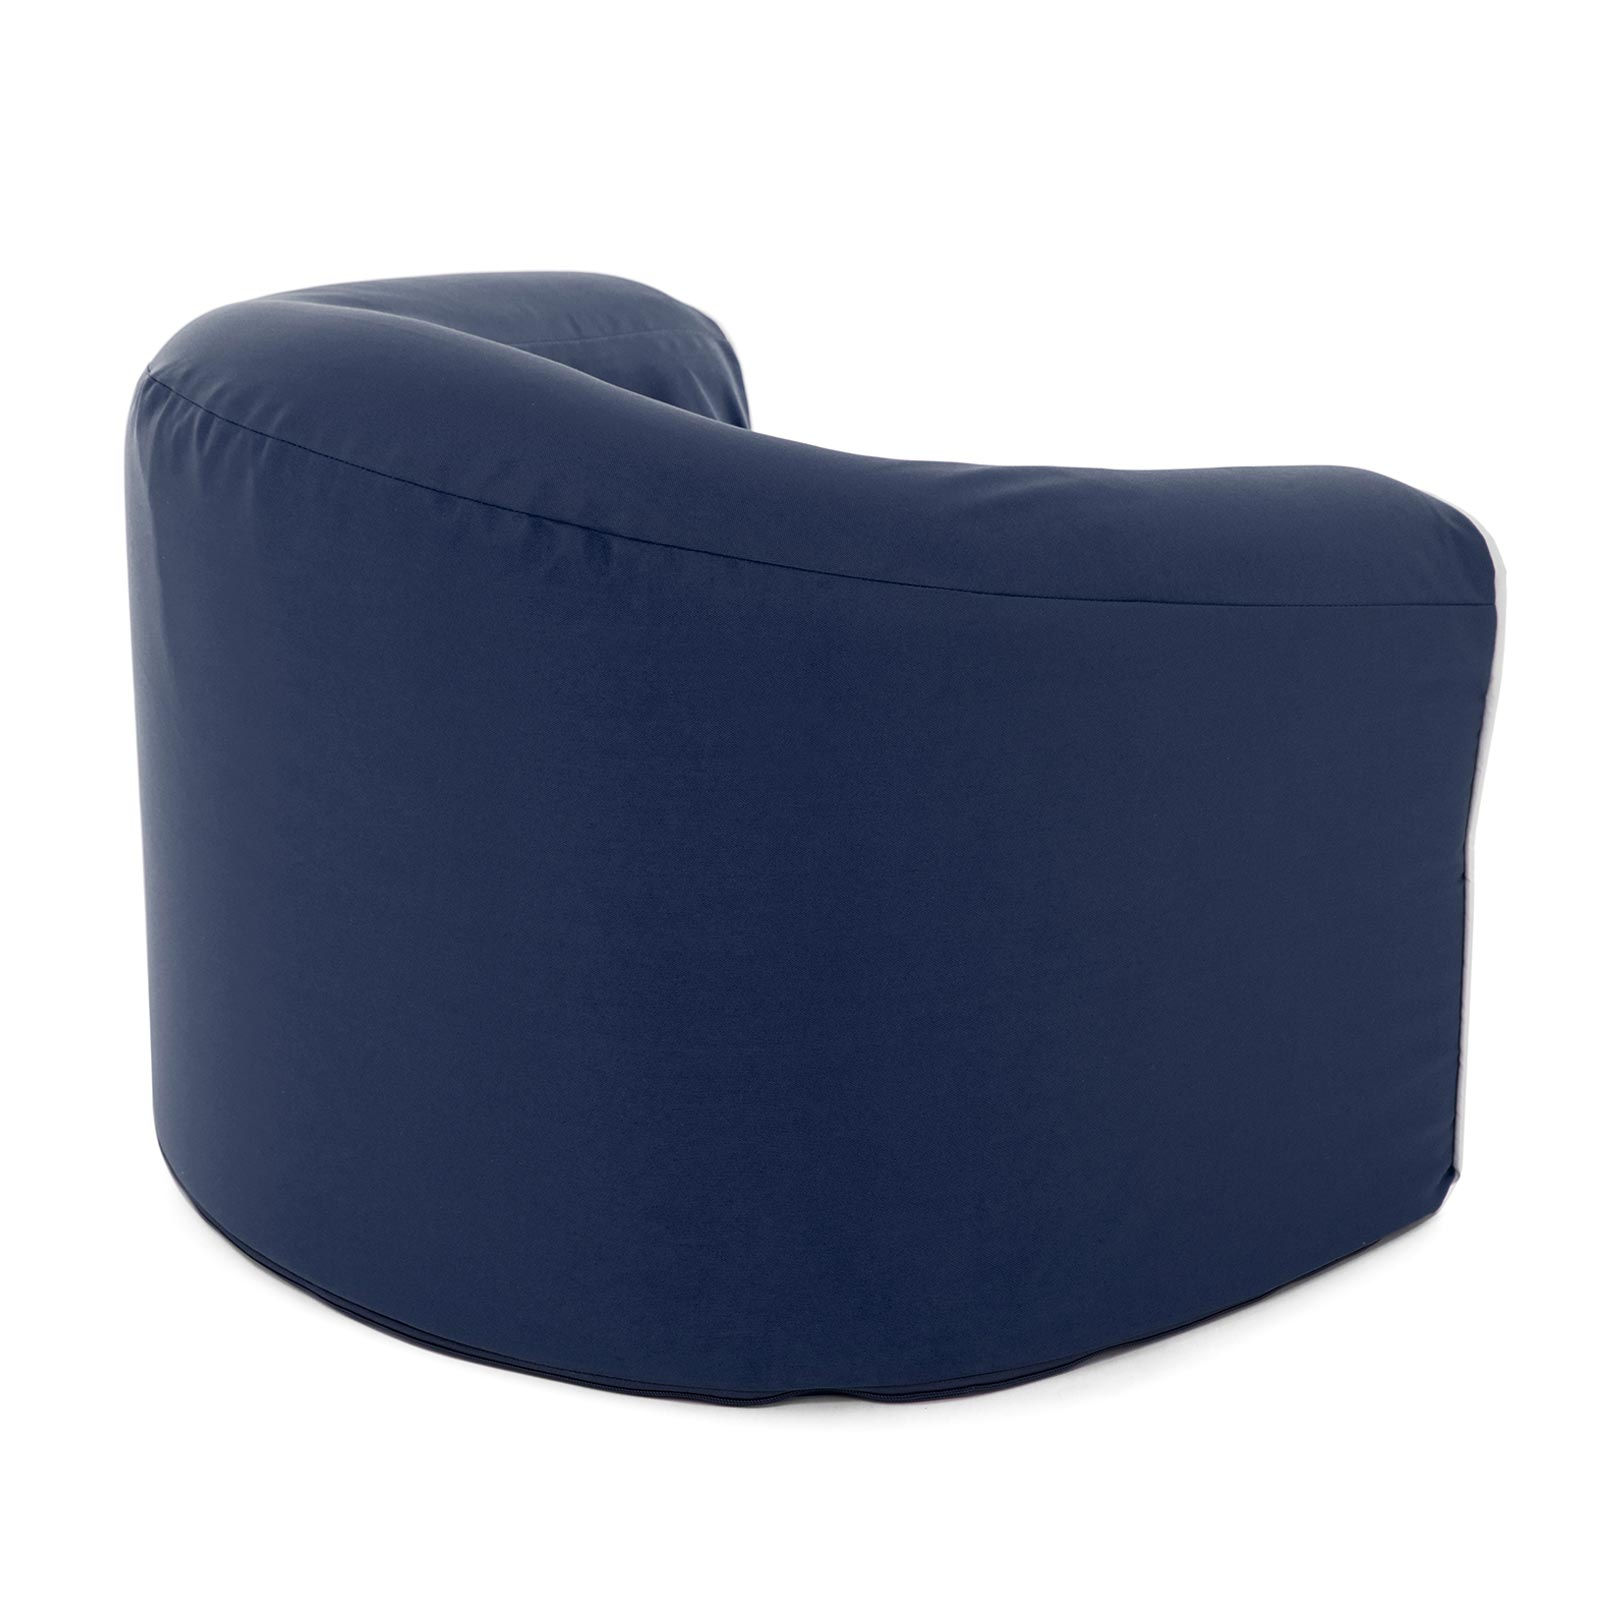 Back view of the crown blue pop armchair kids seat